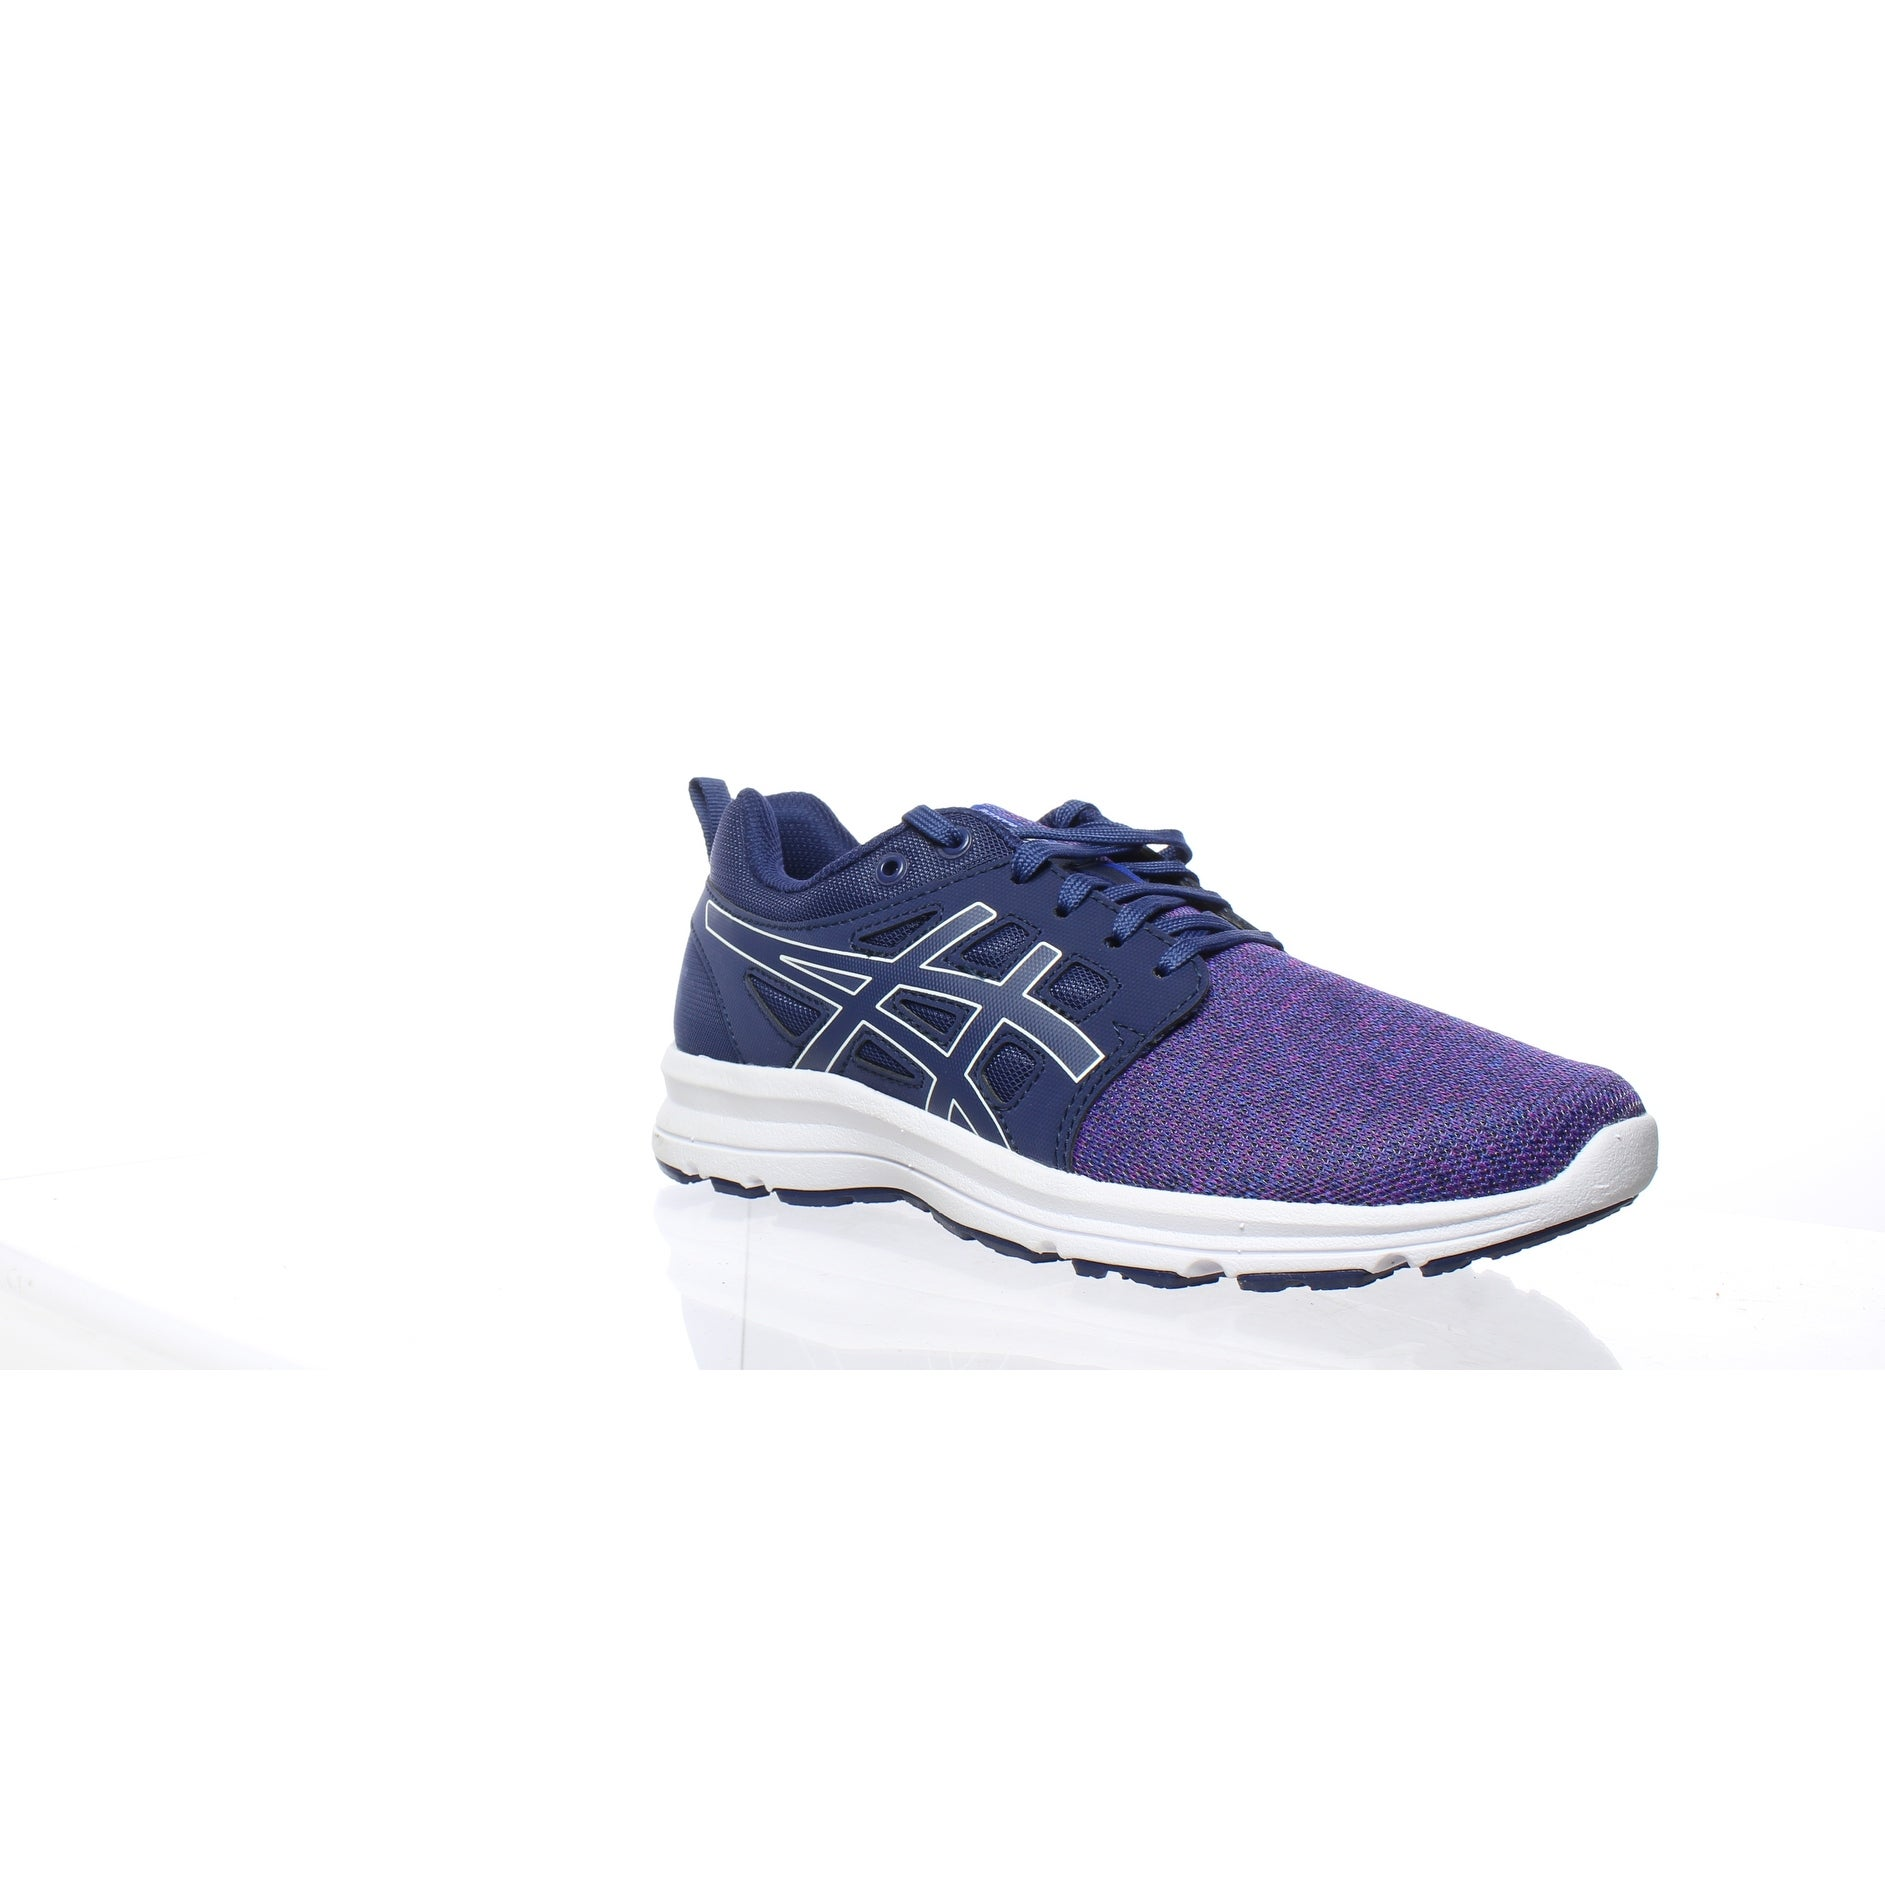 womens asics trainers size 7